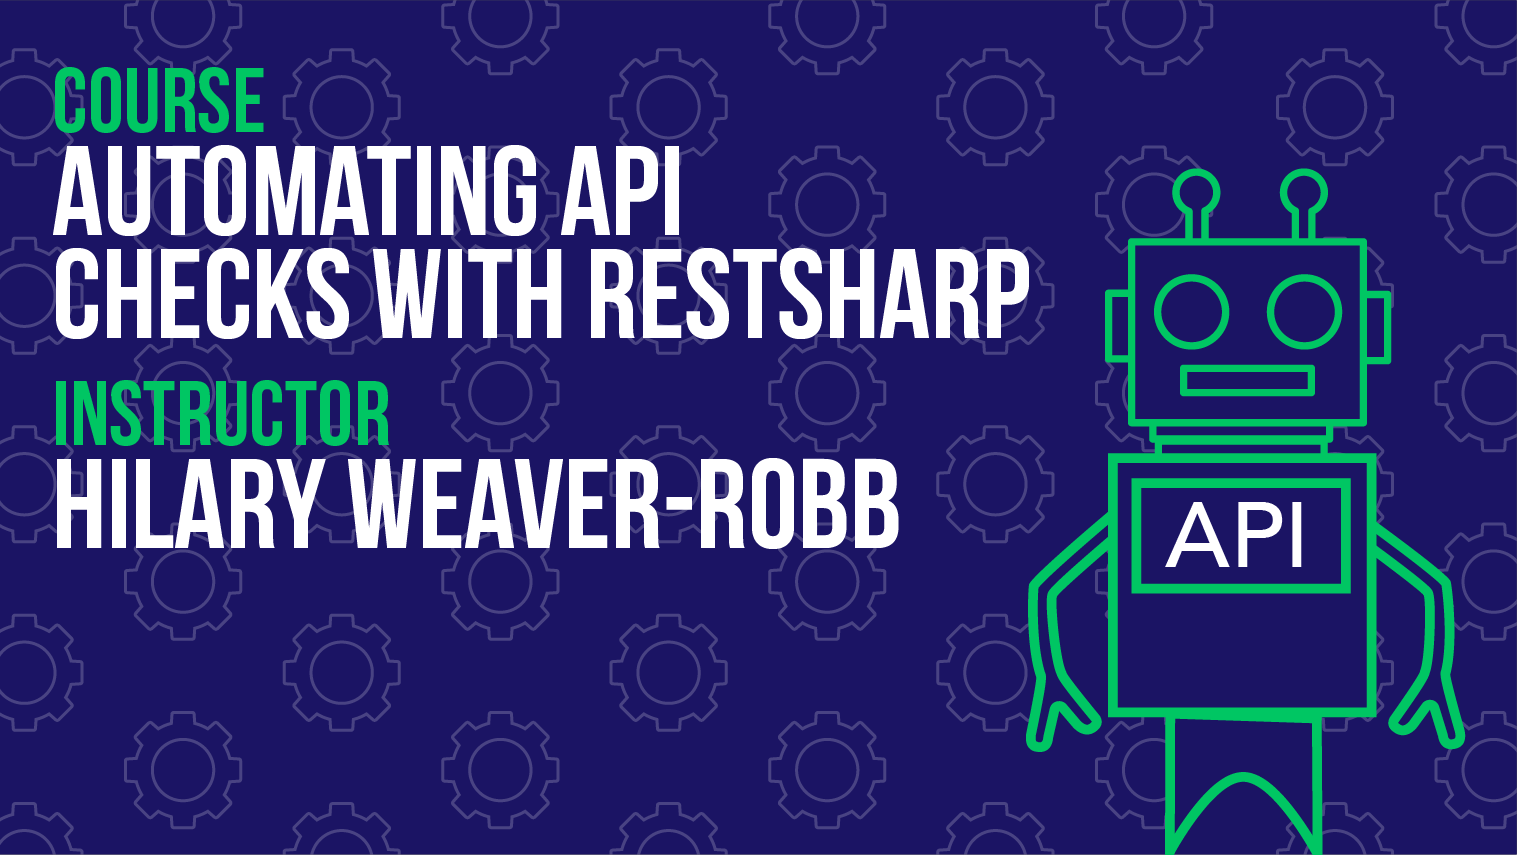 Automating API Checks With RestSharp - Hilary Weaver-Robb